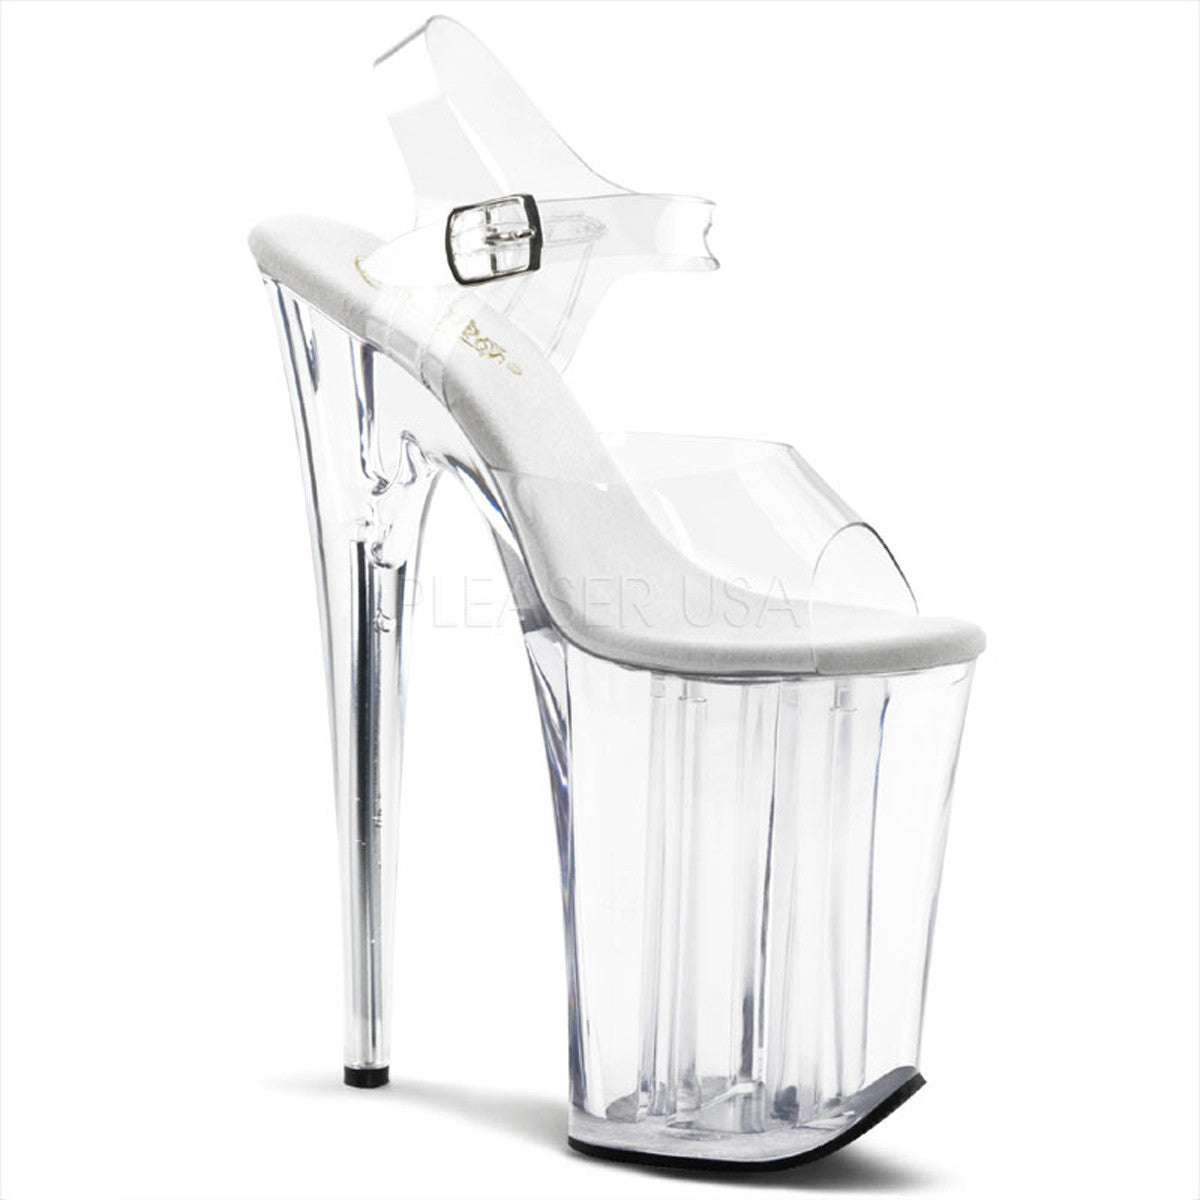 PLEASER INFINITY-908 Clear 9 Inch Heel Sandals - Shoecup.com - 1